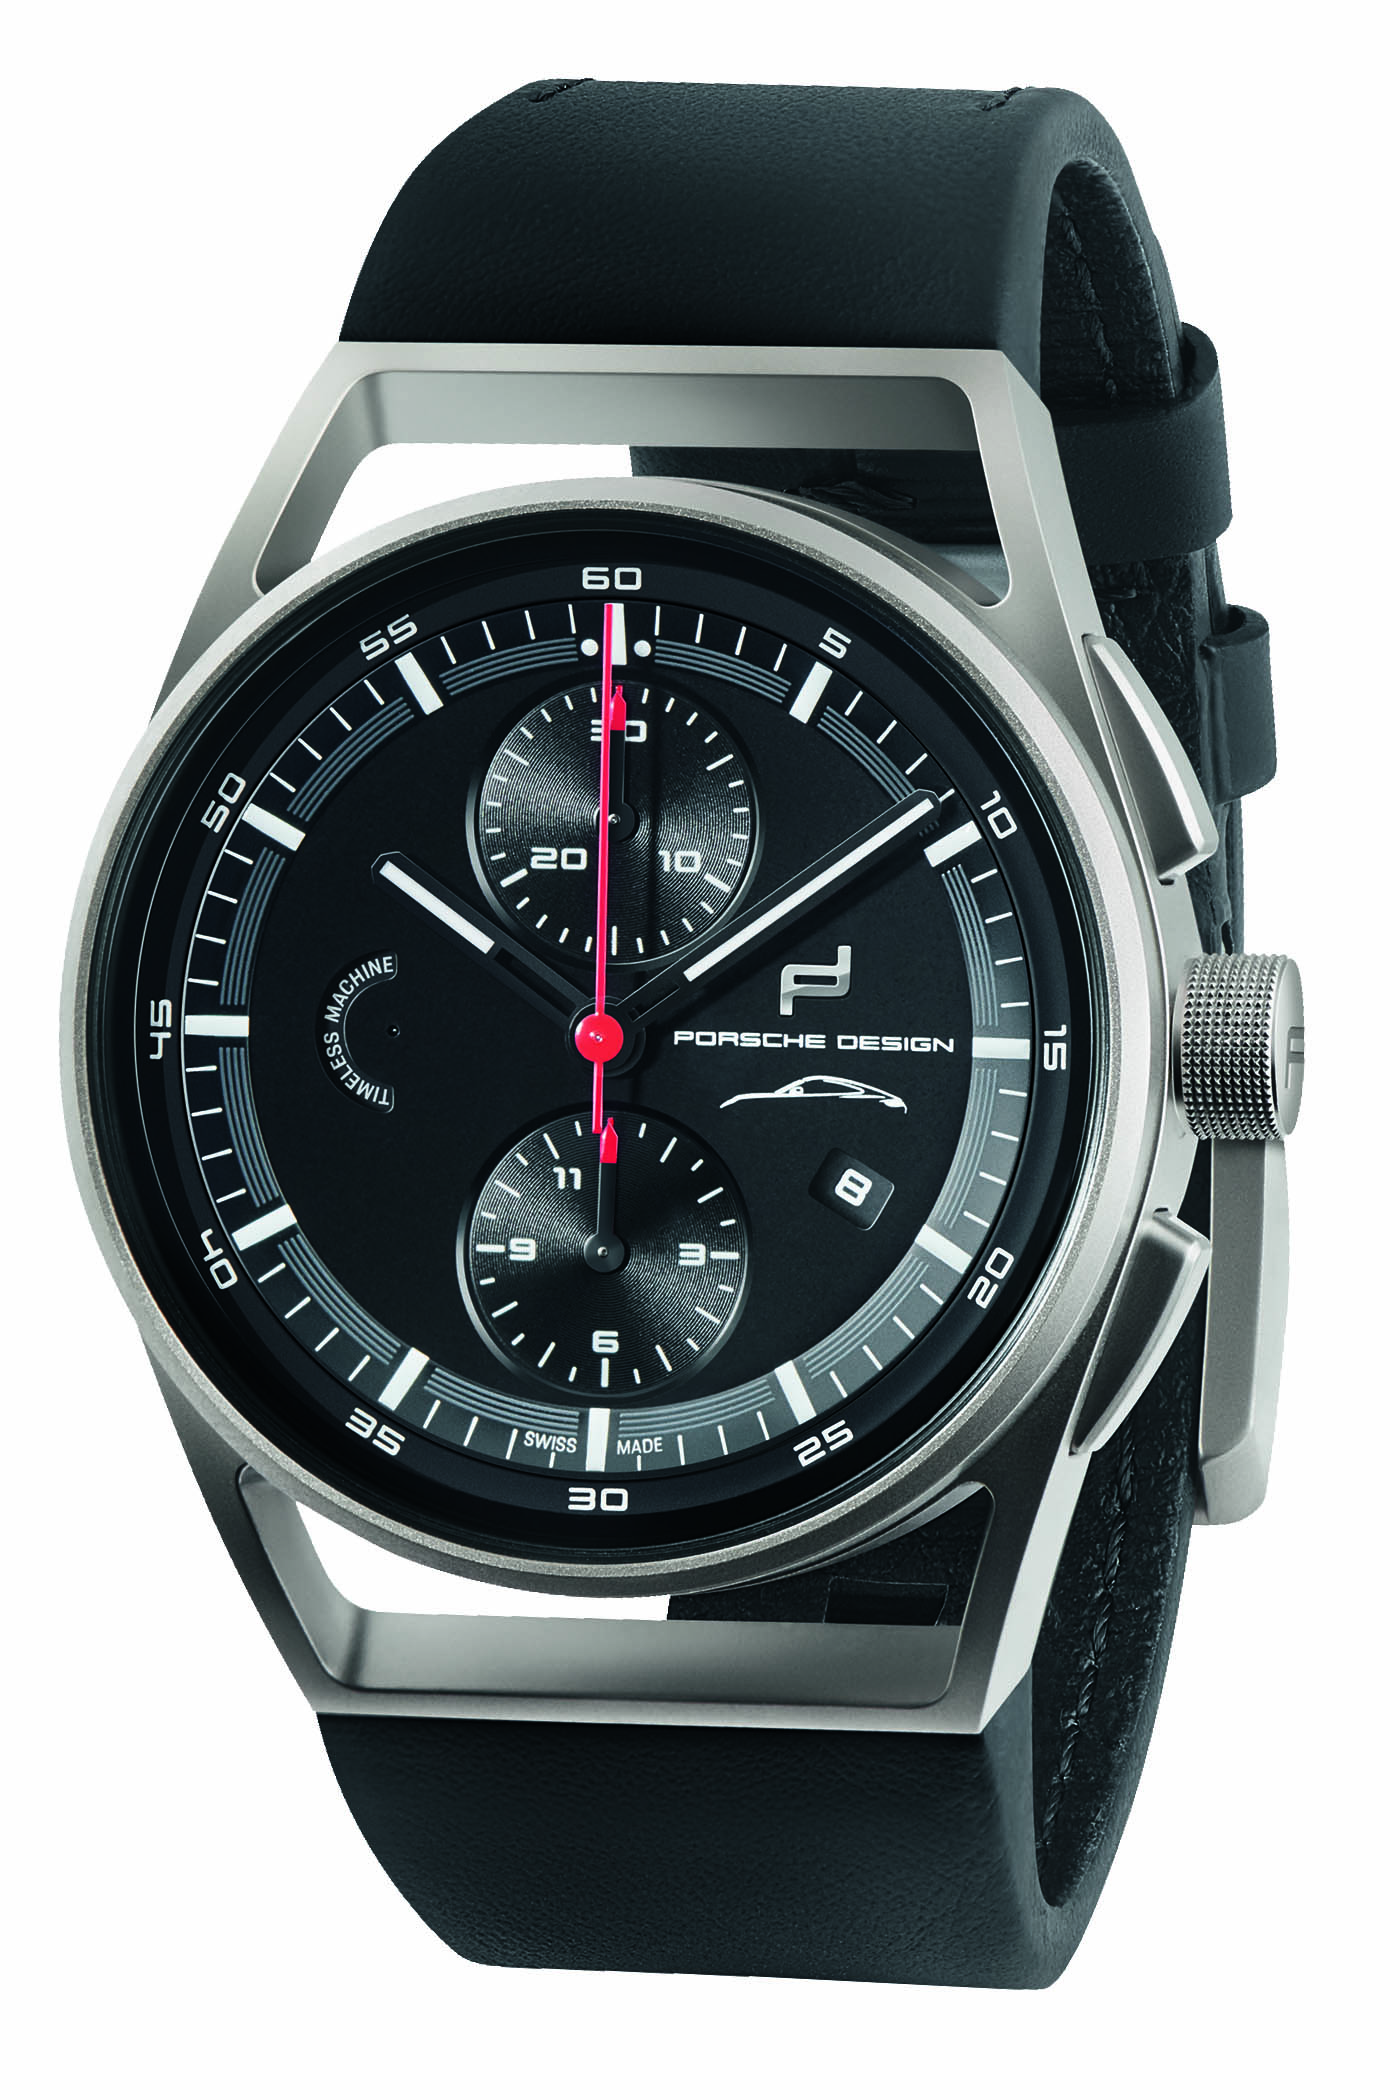 Porsche Design 911 Chronograph Timeless Machine - Celebrating the Newly-Released Porsche 992 - 3